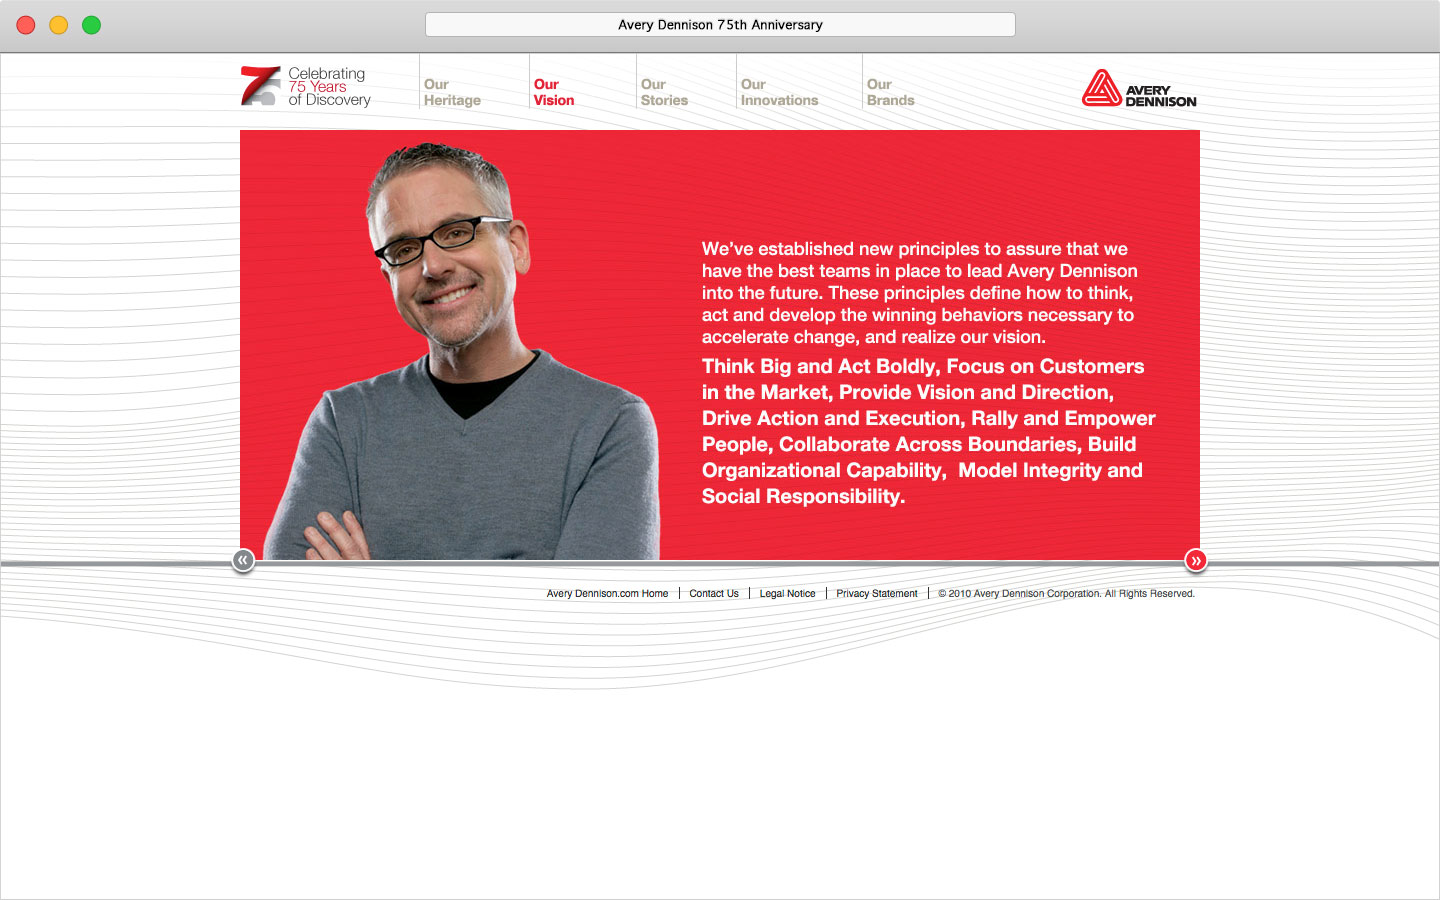 Avery Dennison 75th anniversary microsite Our Vision page